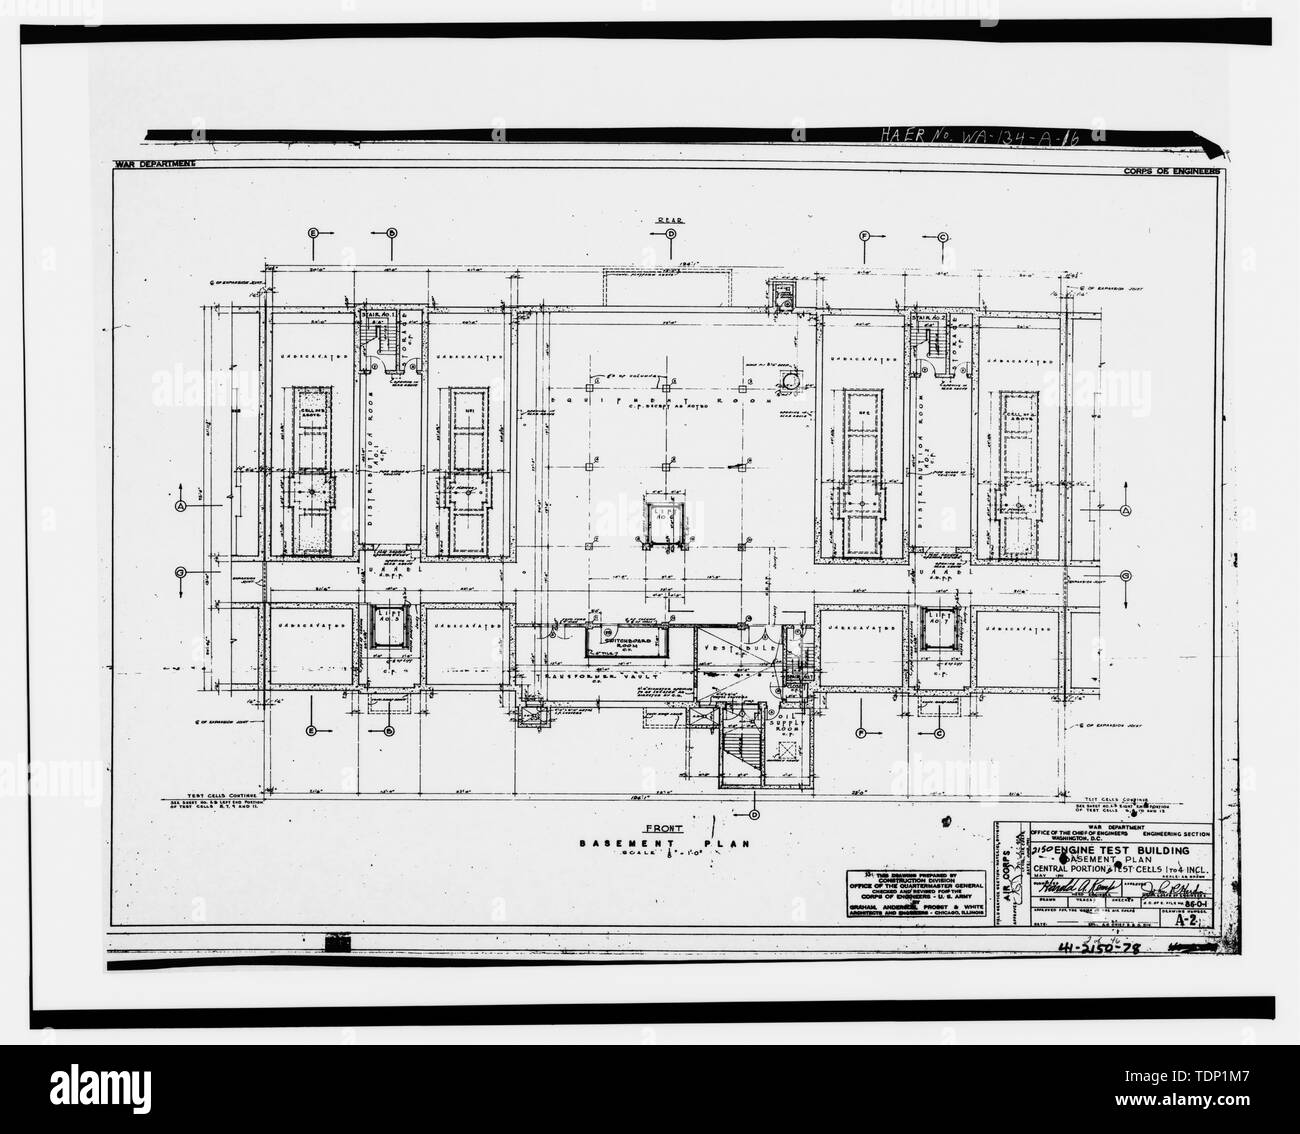 Photocopy Of Engineering Drawing May 1941 Original Drawing Located At Fairchild Air Force Base Civil Engineering Building Civil Engineering Vault Engine Test Cell Building Basement Floor Plan Central Portion And Test Cells